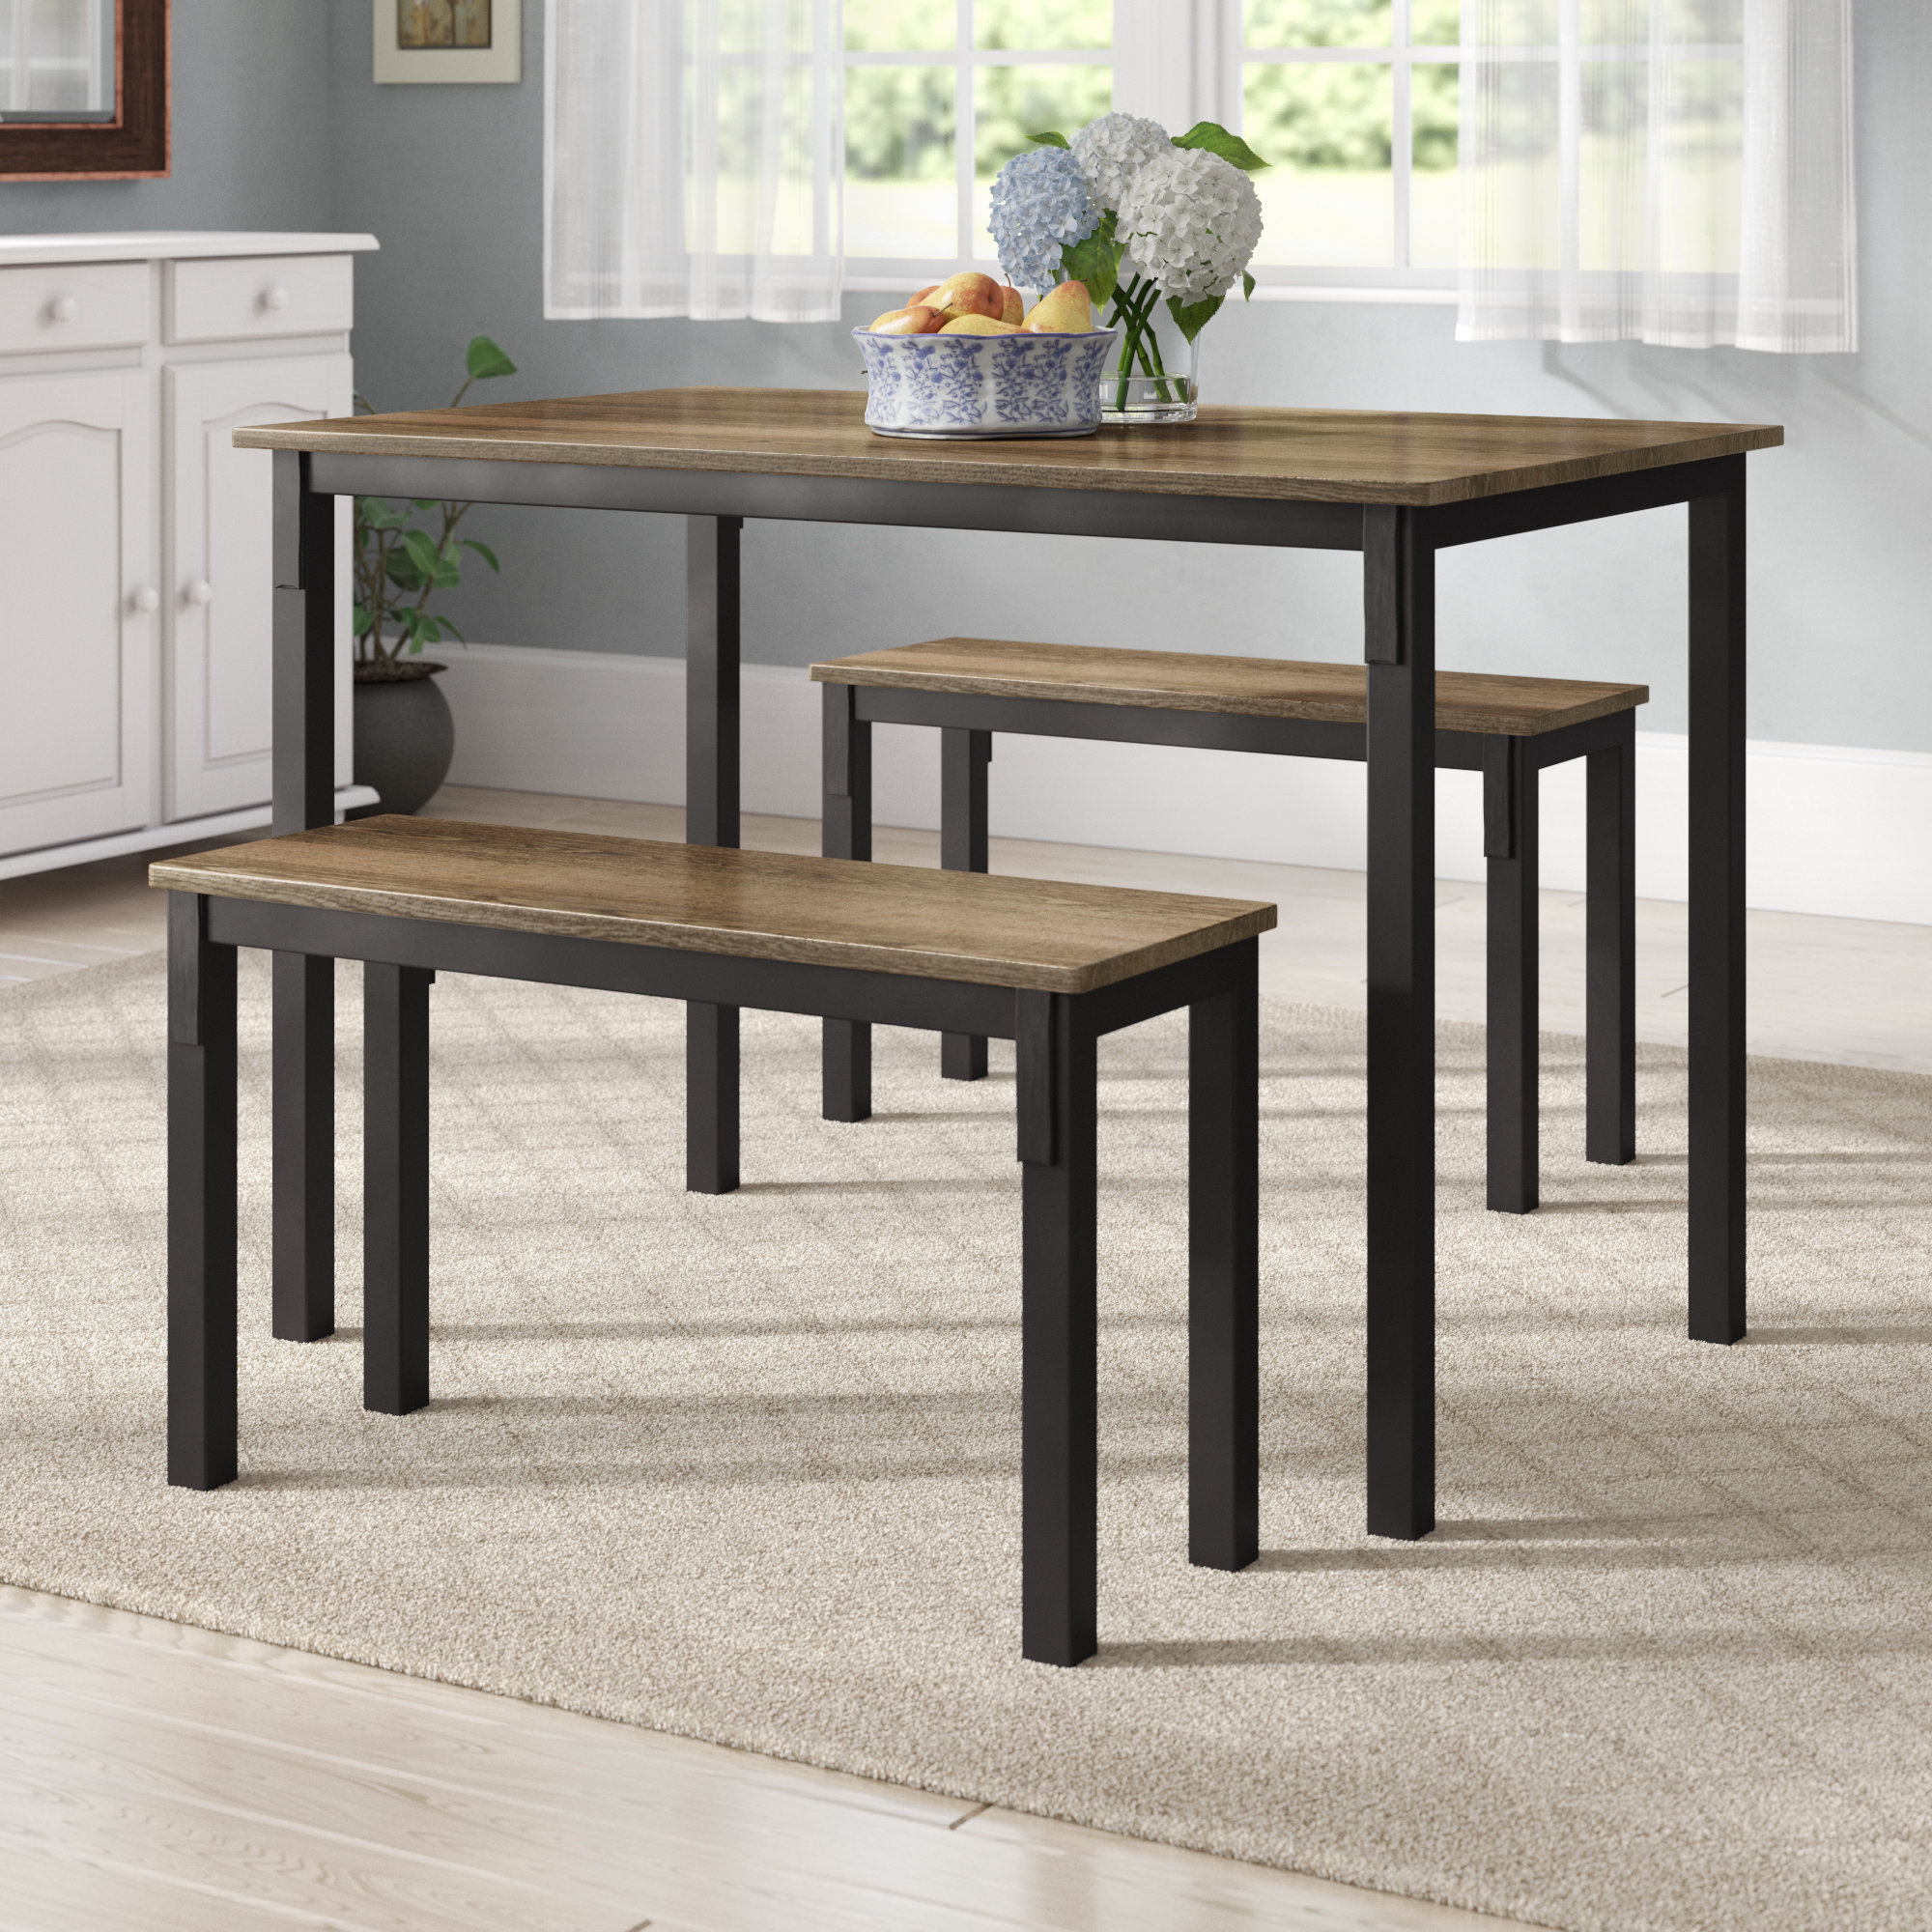 Well Liked Partin 3 Piece Dining Sets Throughout Andover Mills Rossiter 3 Piece Dining Set & Reviews (View 3 of 25)